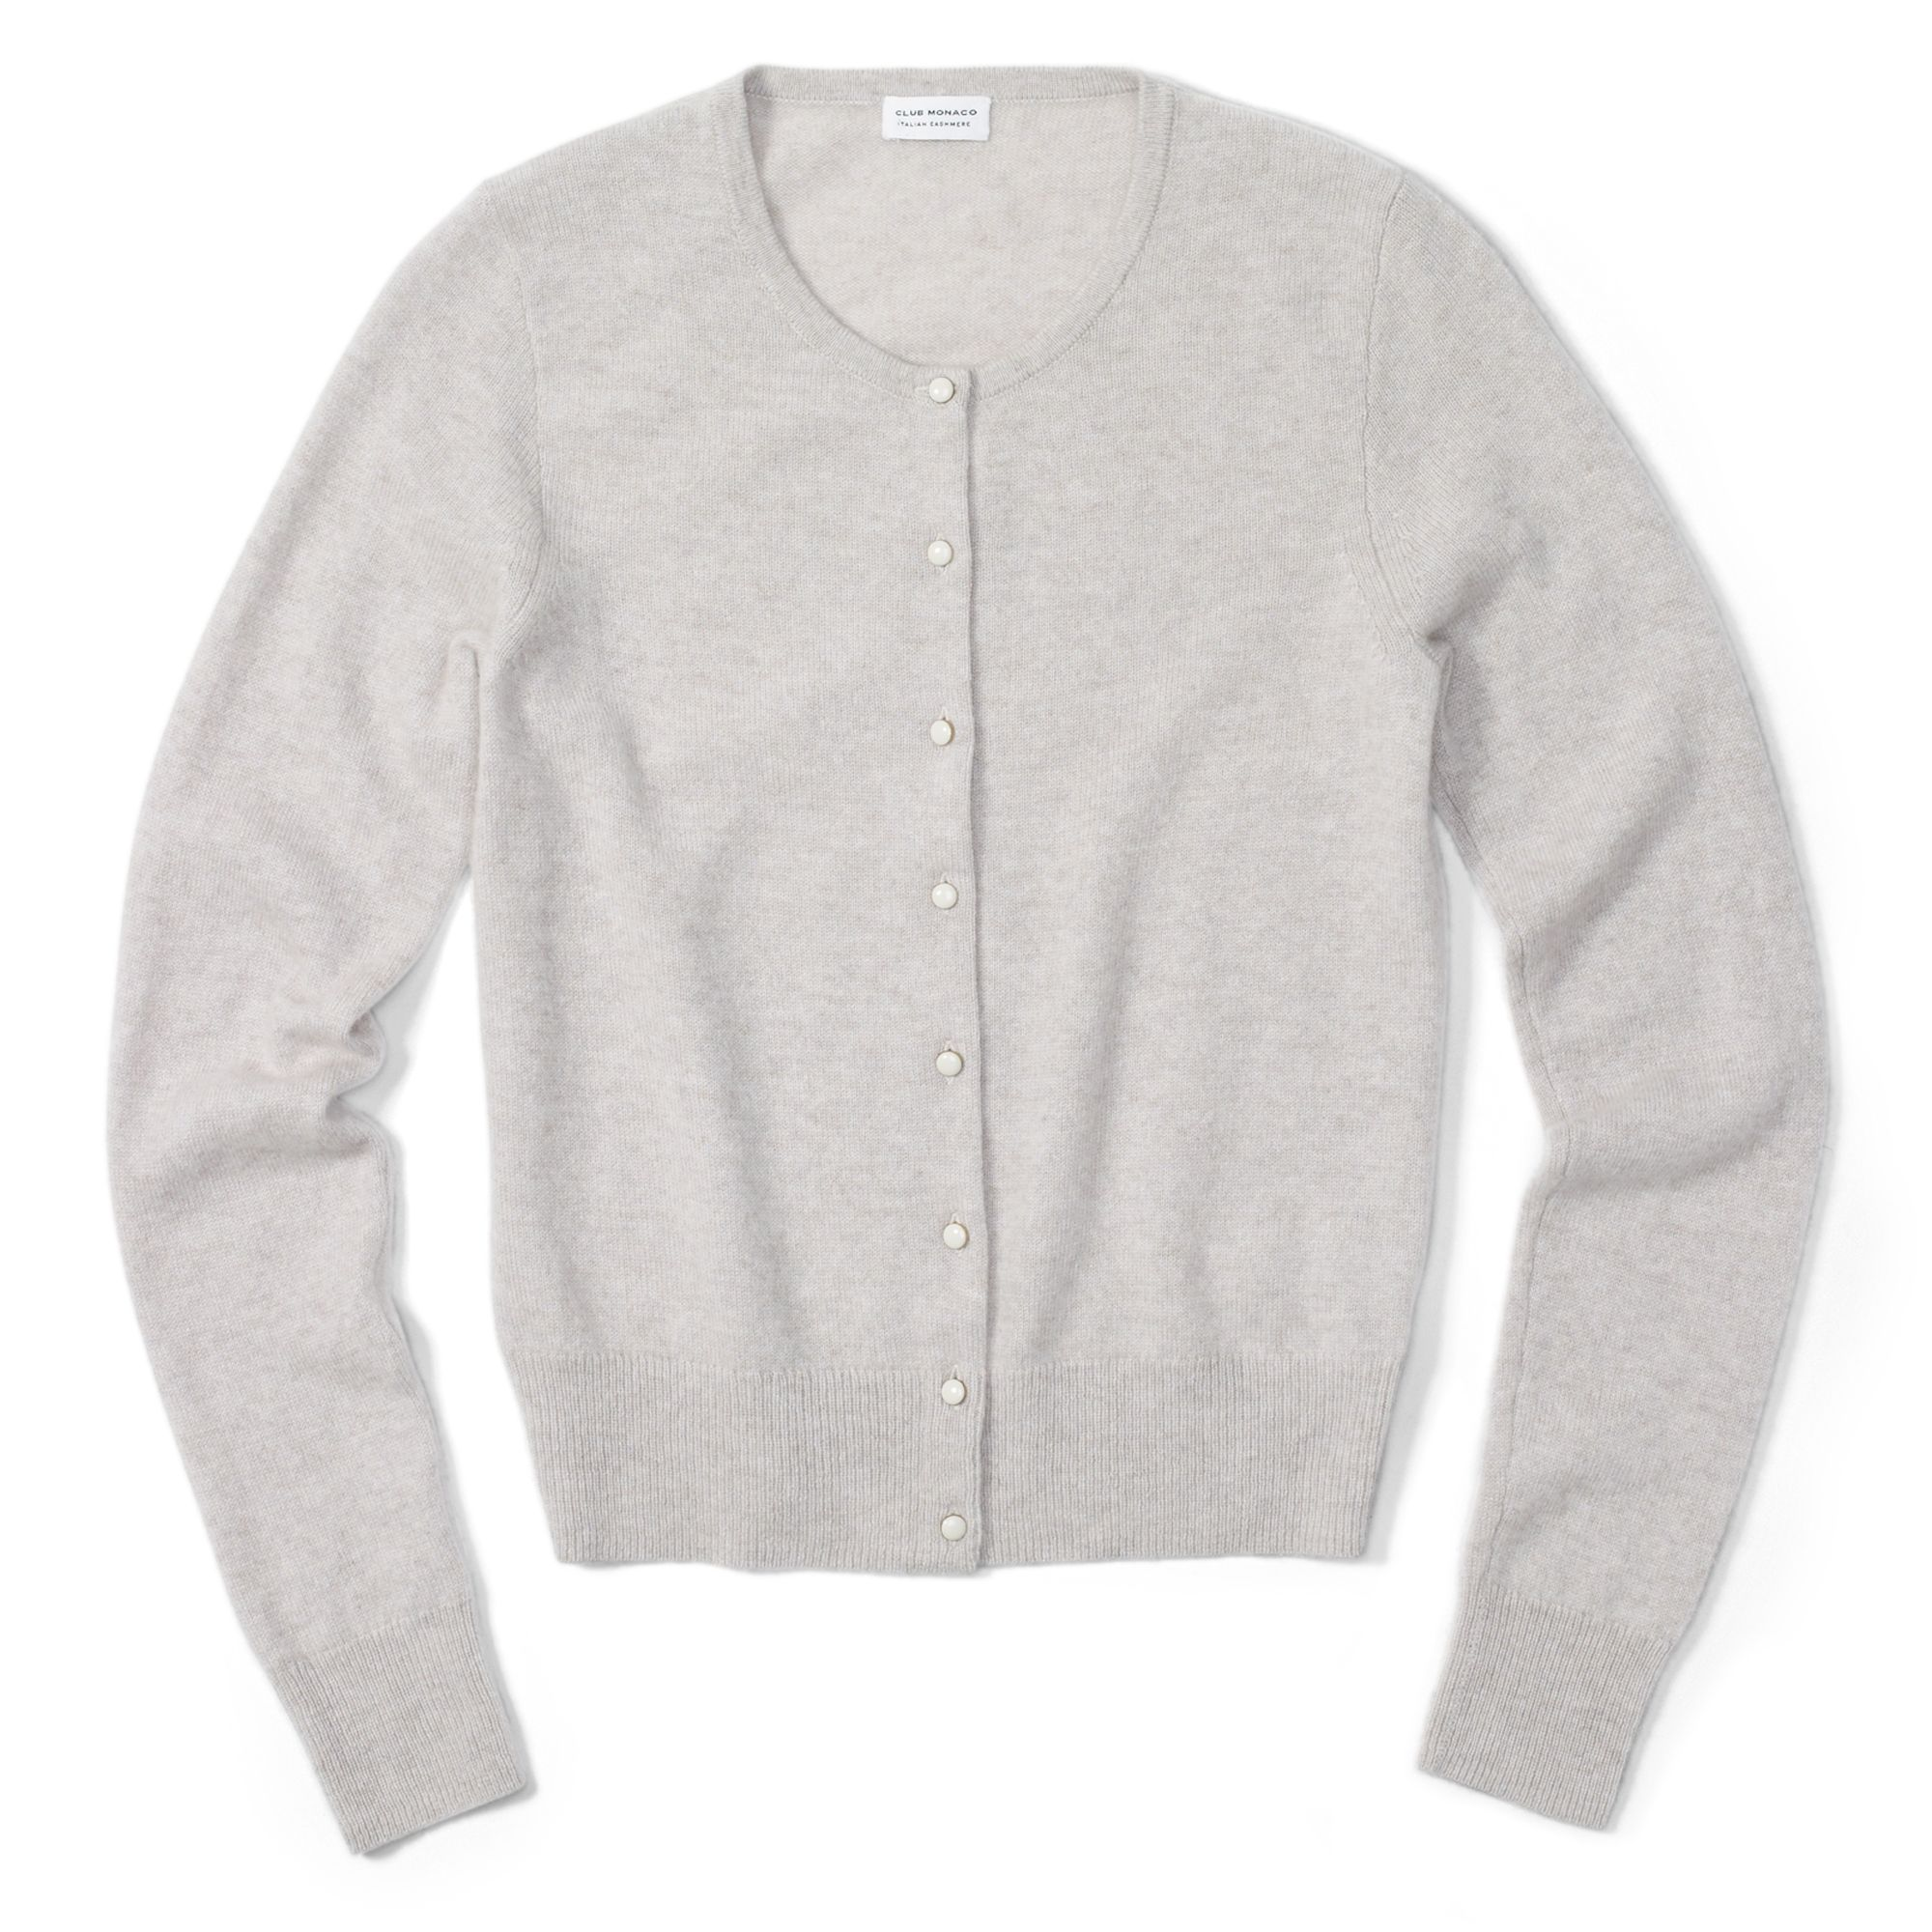 Club monaco Cashmere Cardigan in Gray | Lyst